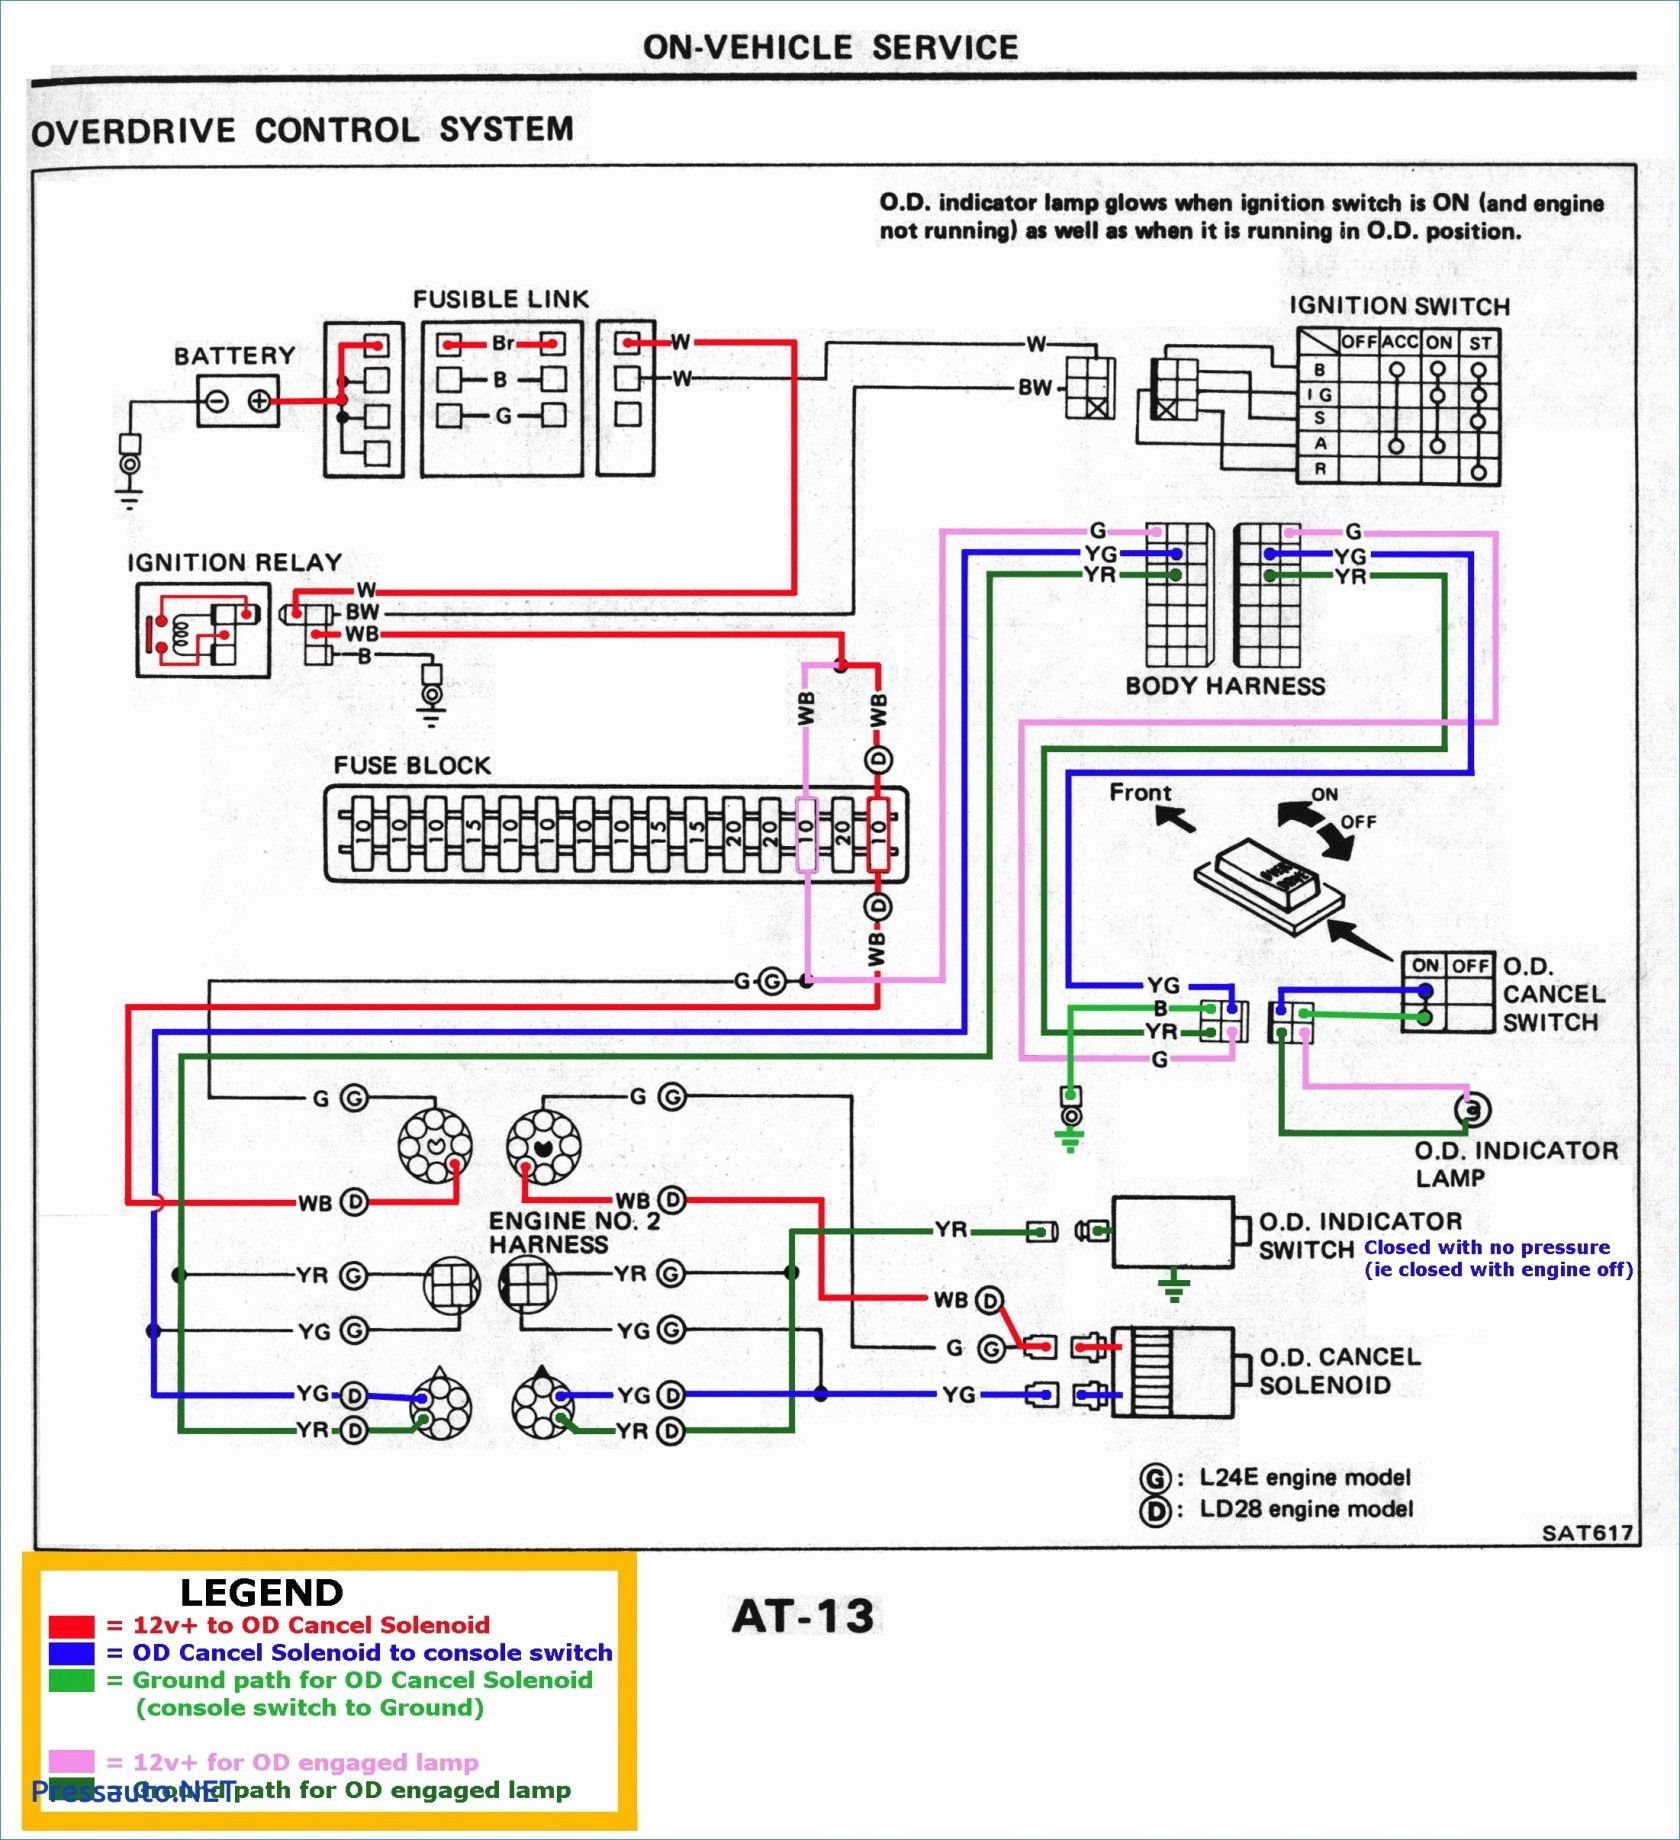 warn a2000 winch wiring diagram Collection-Ac Winch Wiring Diagram Refrence Wiring Diagram for Warn Winch Fresh Wiring Diagram Warn A2000 Wiring 10-g